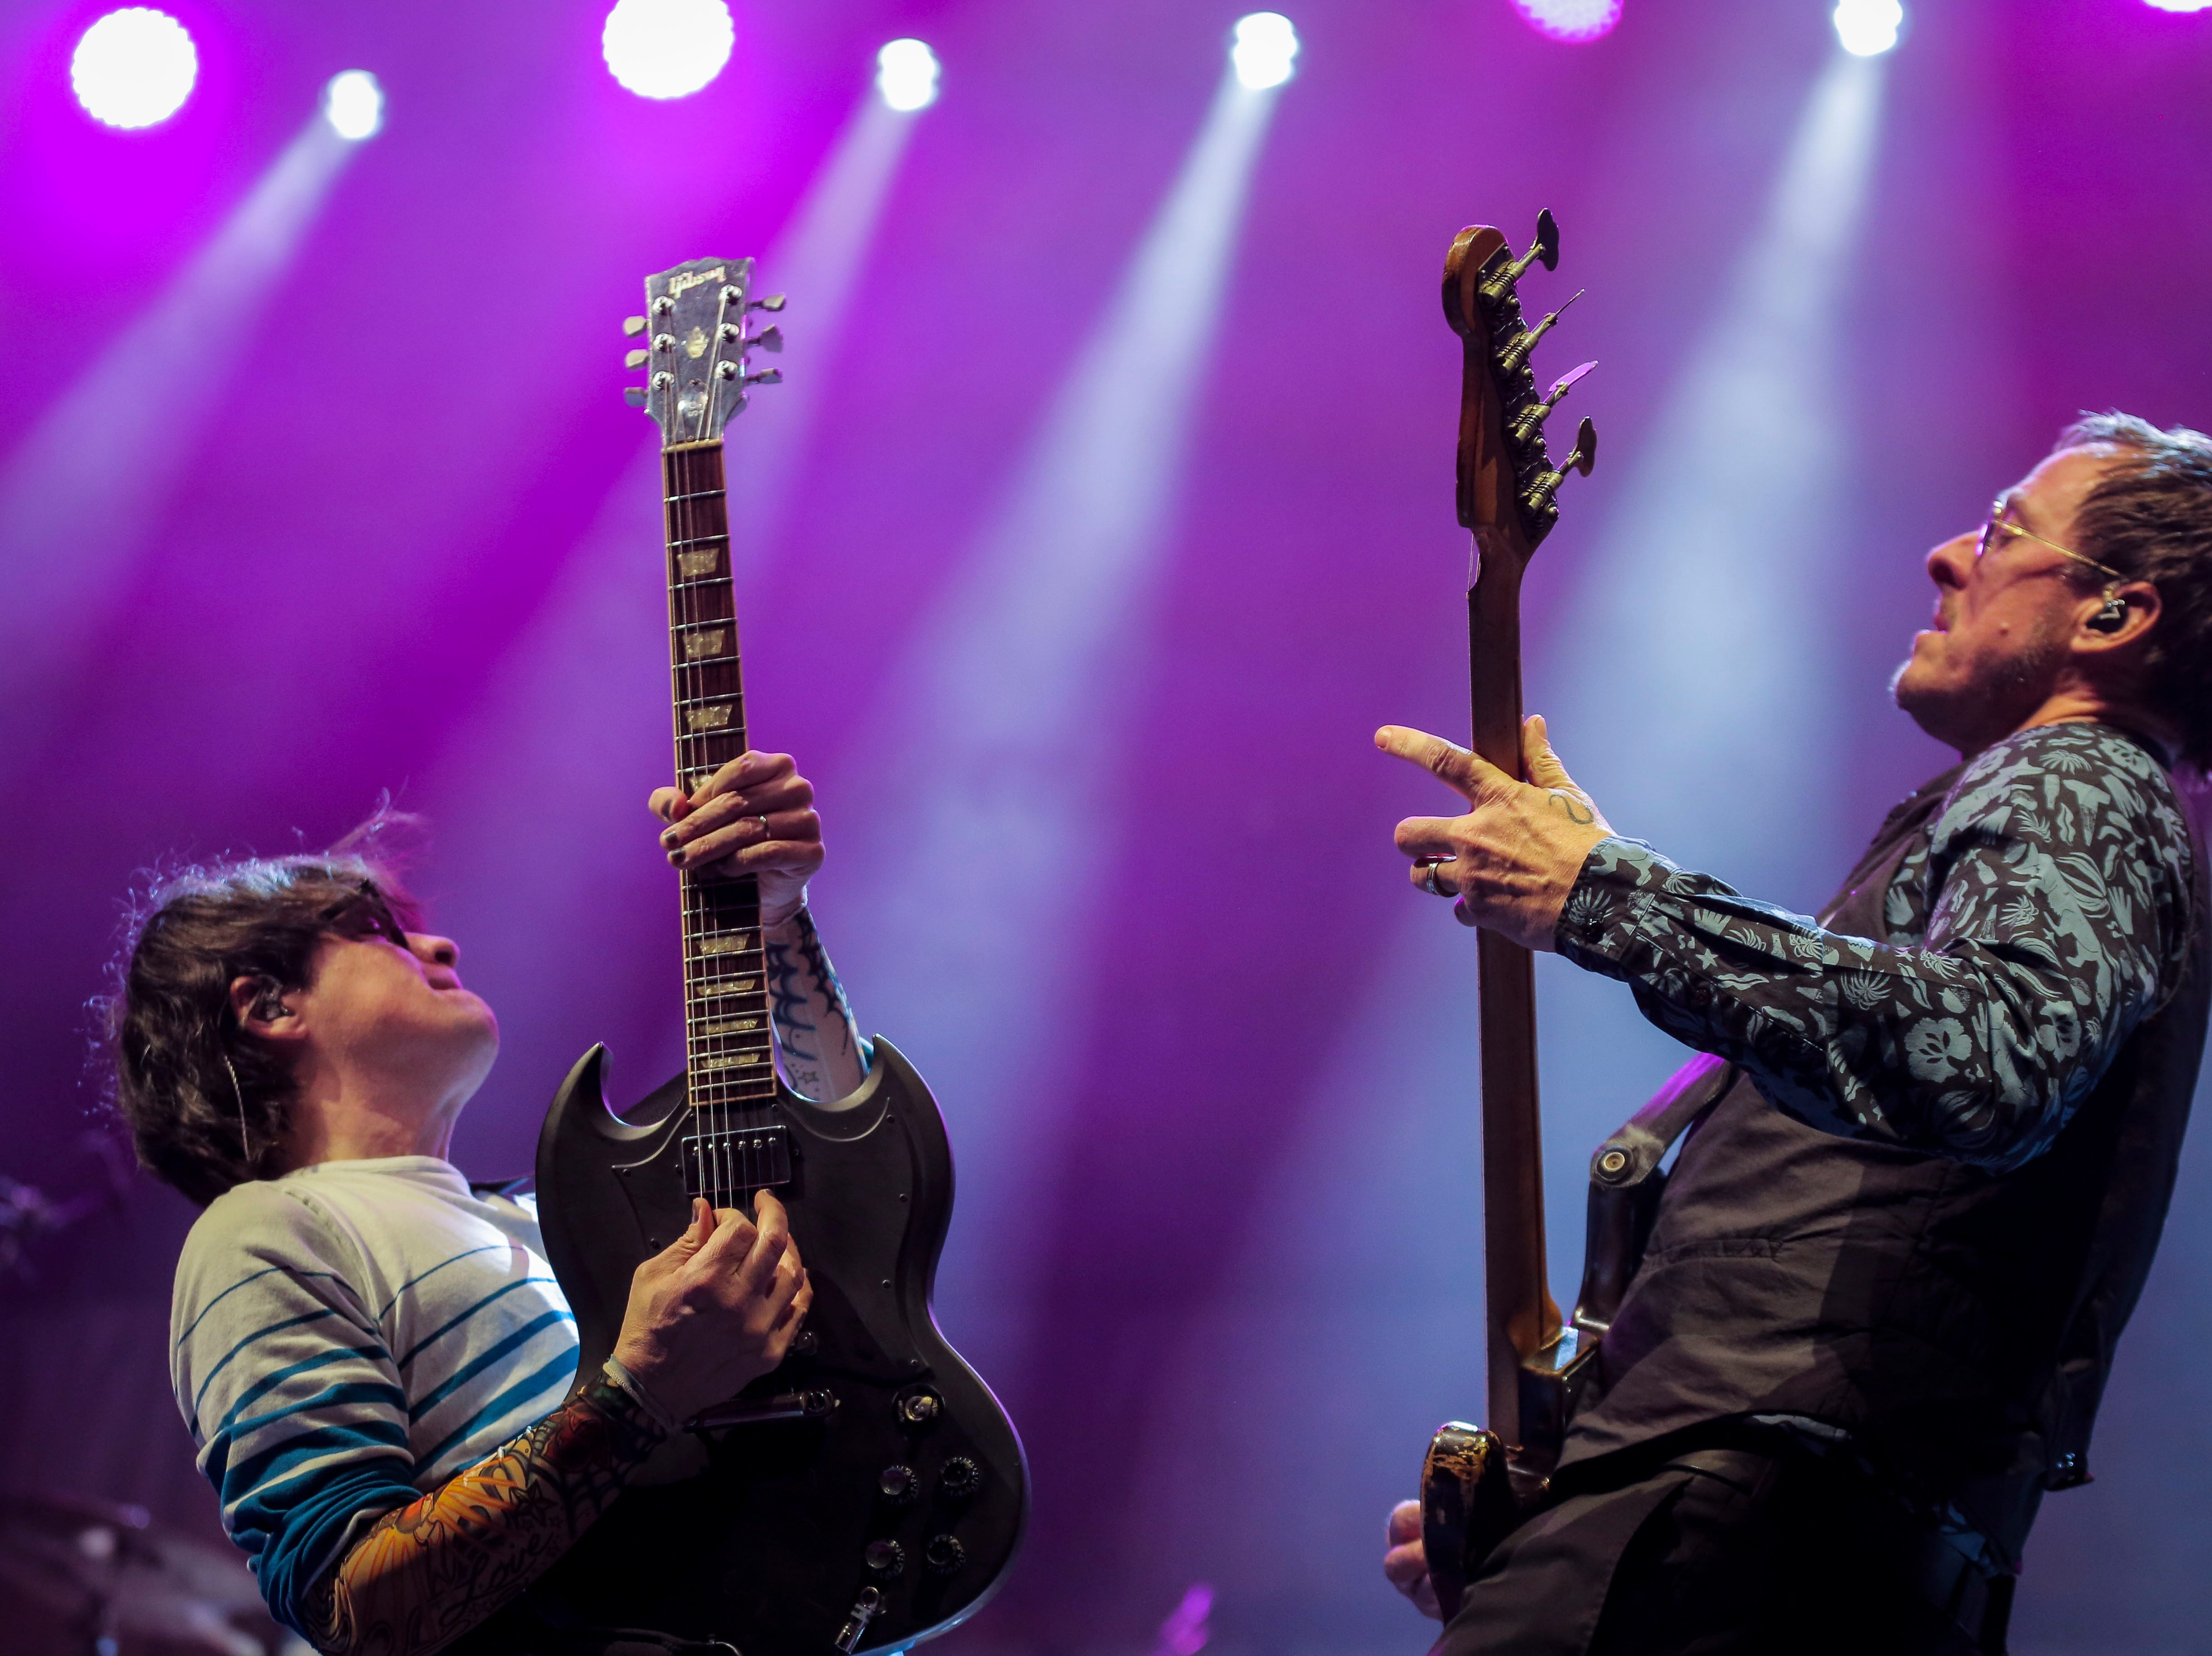 Rivers Cuomo, lead vocals and guitarist, left, and Scott Shriner, bassist, of Weezer play together during the first show of the Weezer x Pixies 2019 tour at the KFC Yum! Center in downtown Louisville, Ky. on Friday, March 8, 2019.